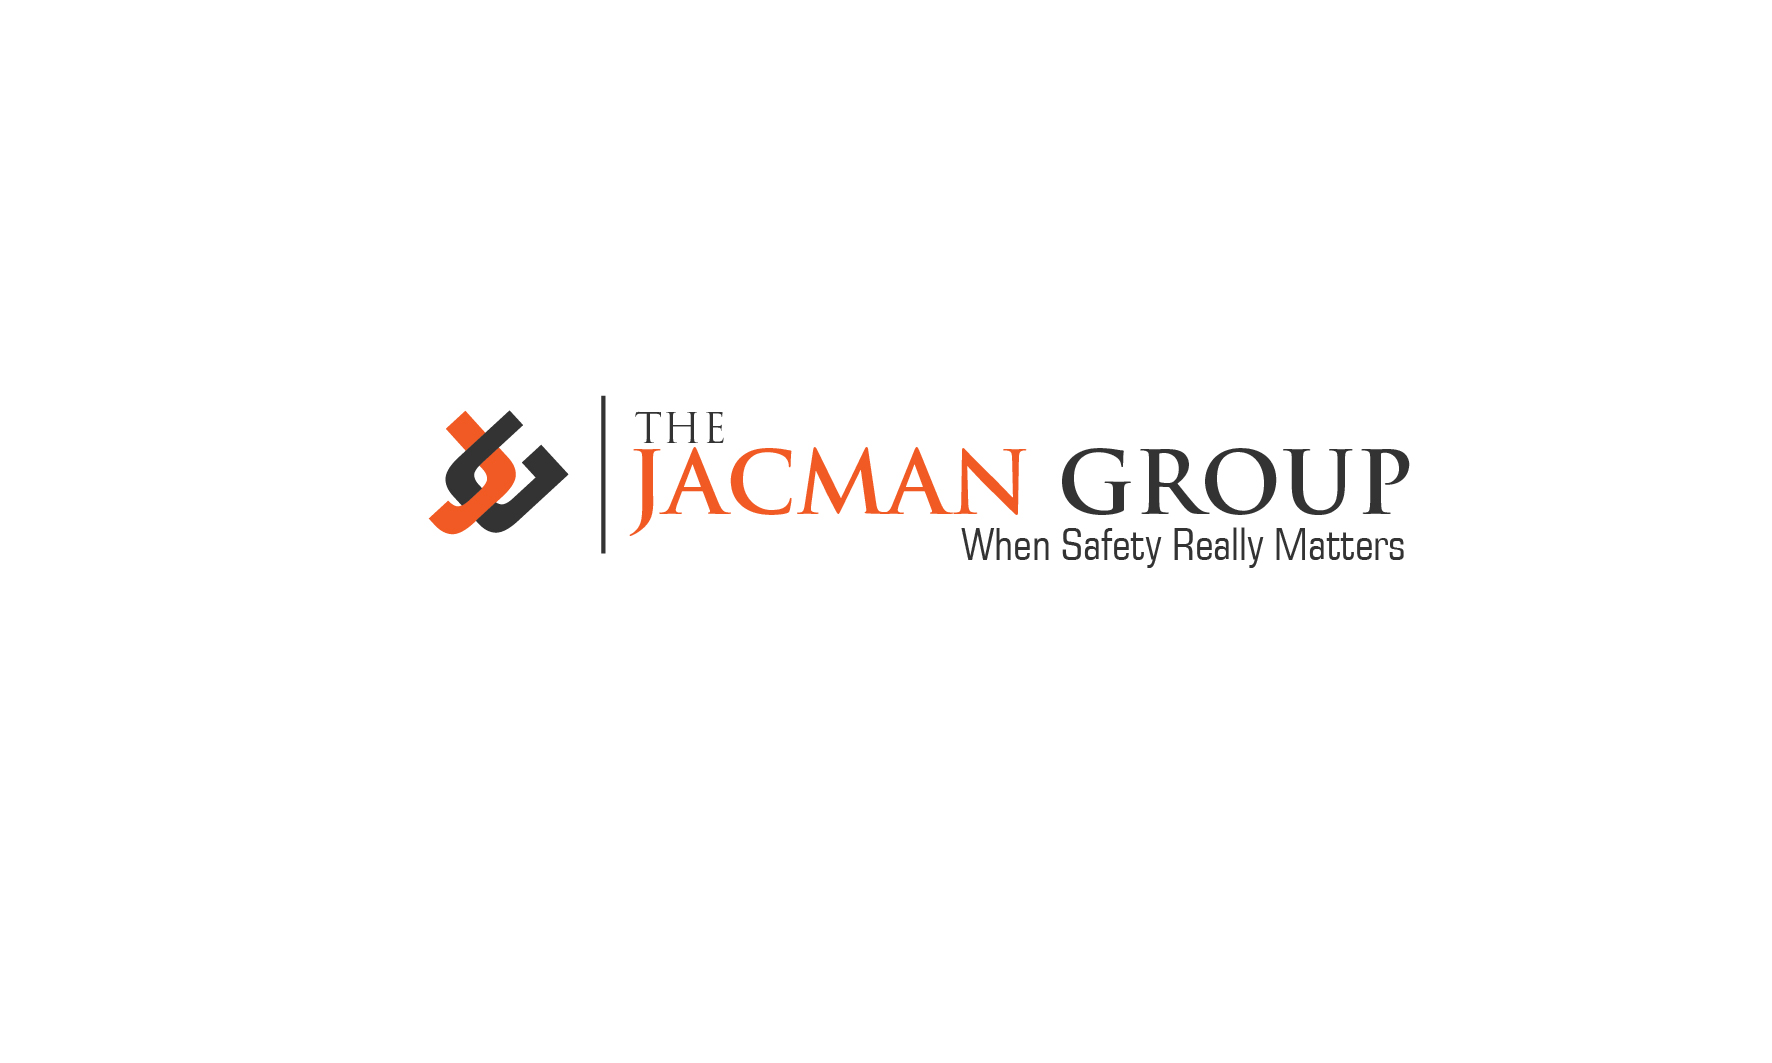 Logo Design by 3draw - Entry No. 4 in the Logo Design Contest The Jacman Group Logo Design.